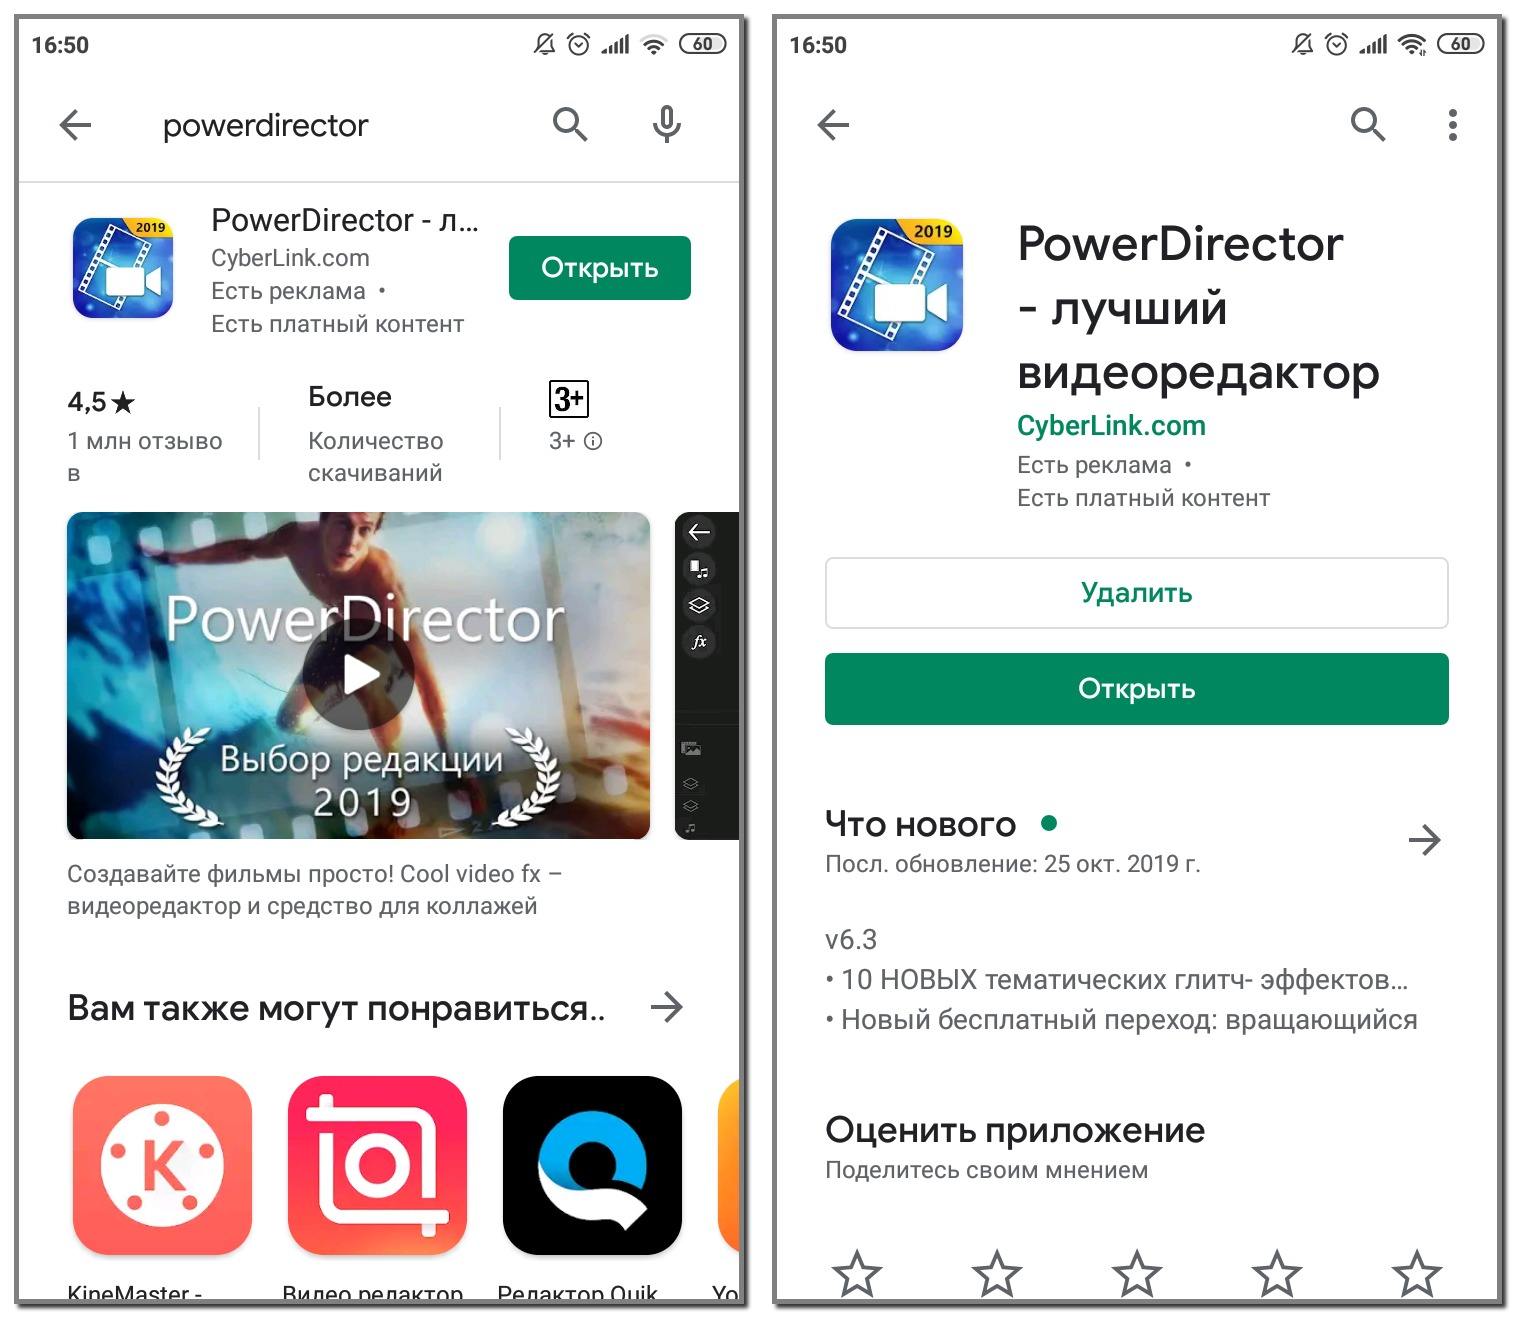 Устанавливаем приложение PowerDirector